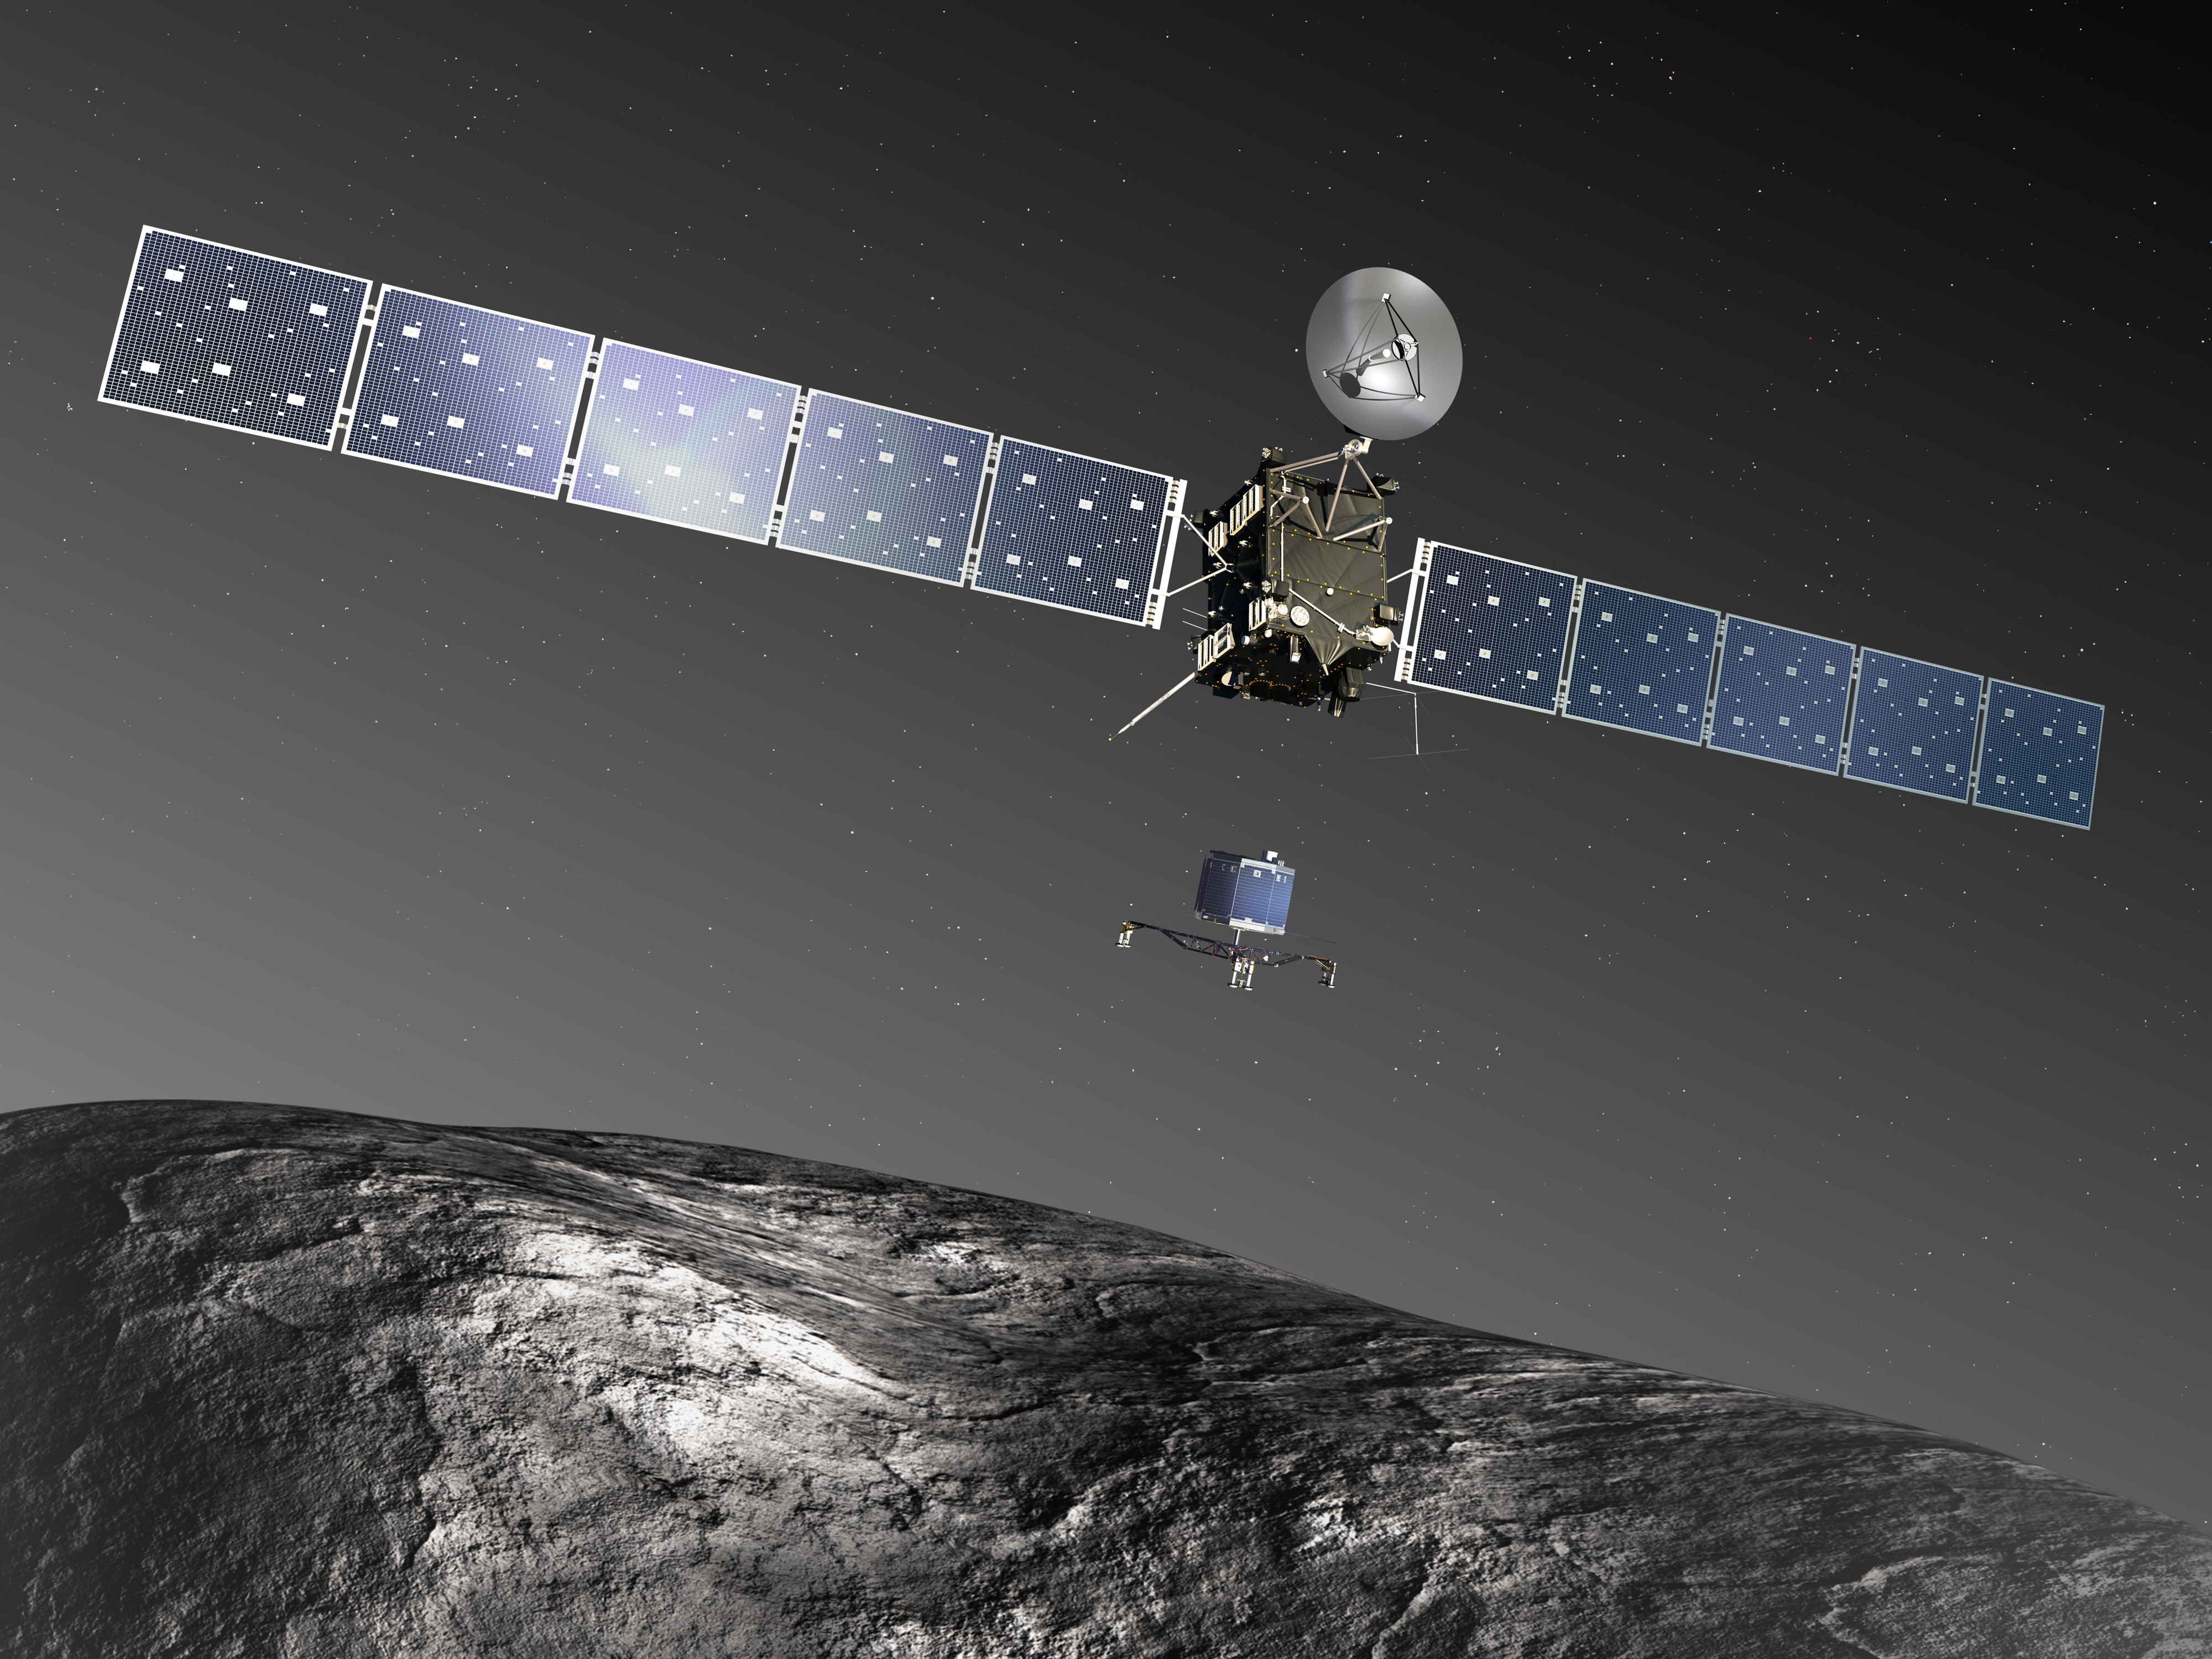 philae found! rosetta space science our activities esa - HD 4000×3000